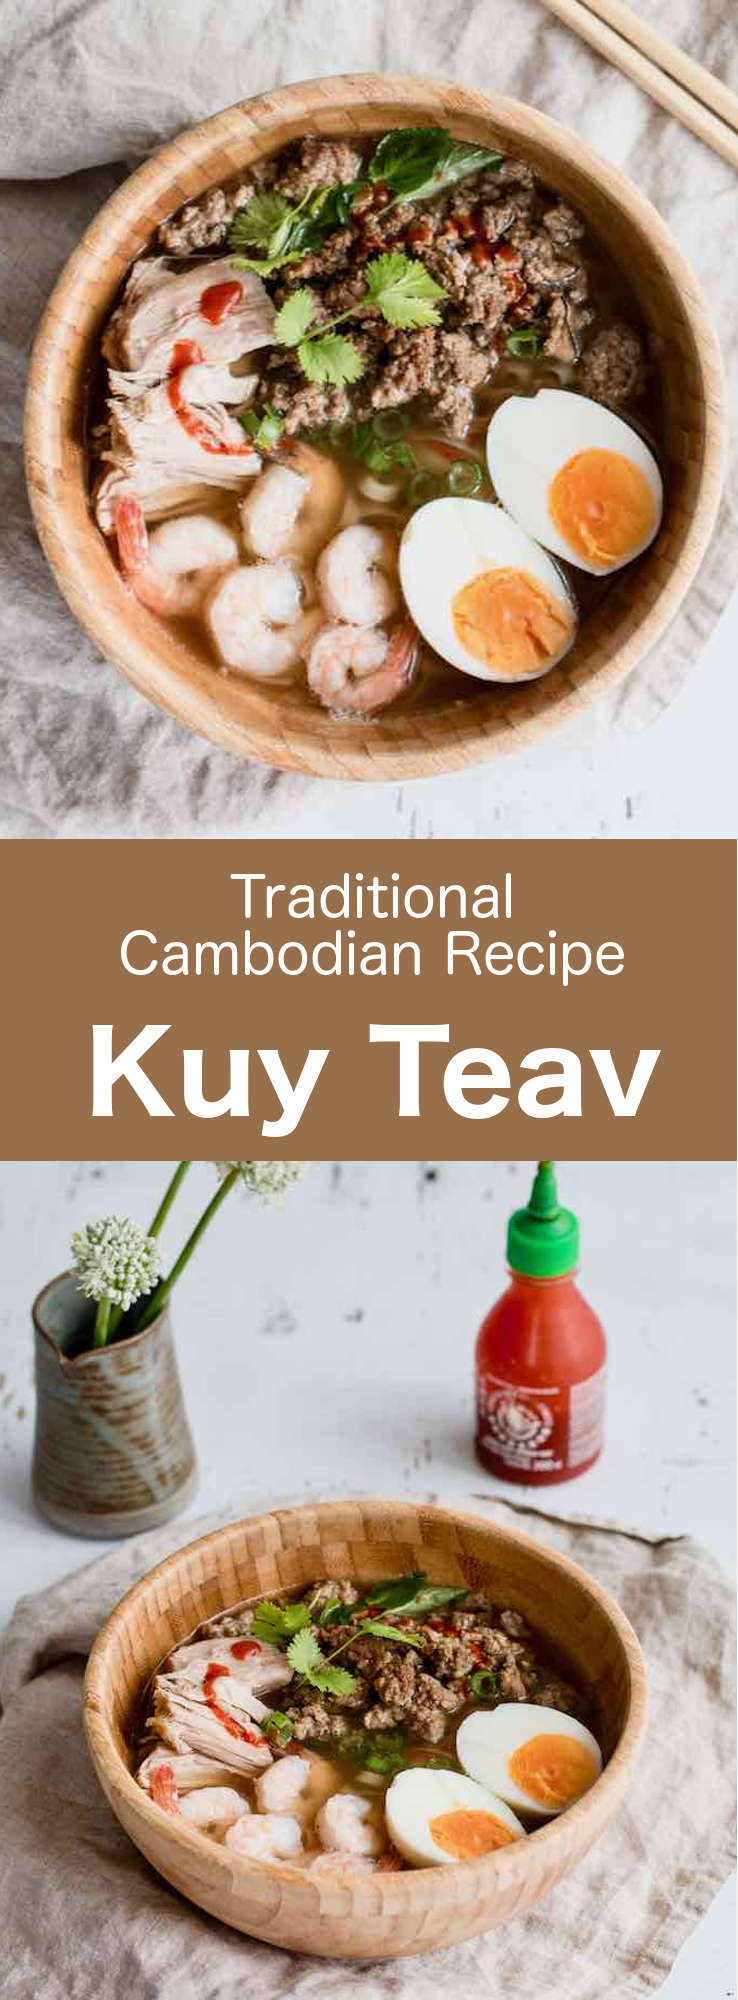 Kuy teav is a delicious traditional noodle soup that is prepared with rice noodles, pork stock and toppings. It is of Chinese origin but is a very popular breakfast dish in Cambodia and Southern Vietnam. #Cambodian #CambodianRecipe #CambodianCuisine #AsianCuisine #AsianRecipe #WorldCuisine #196flavors